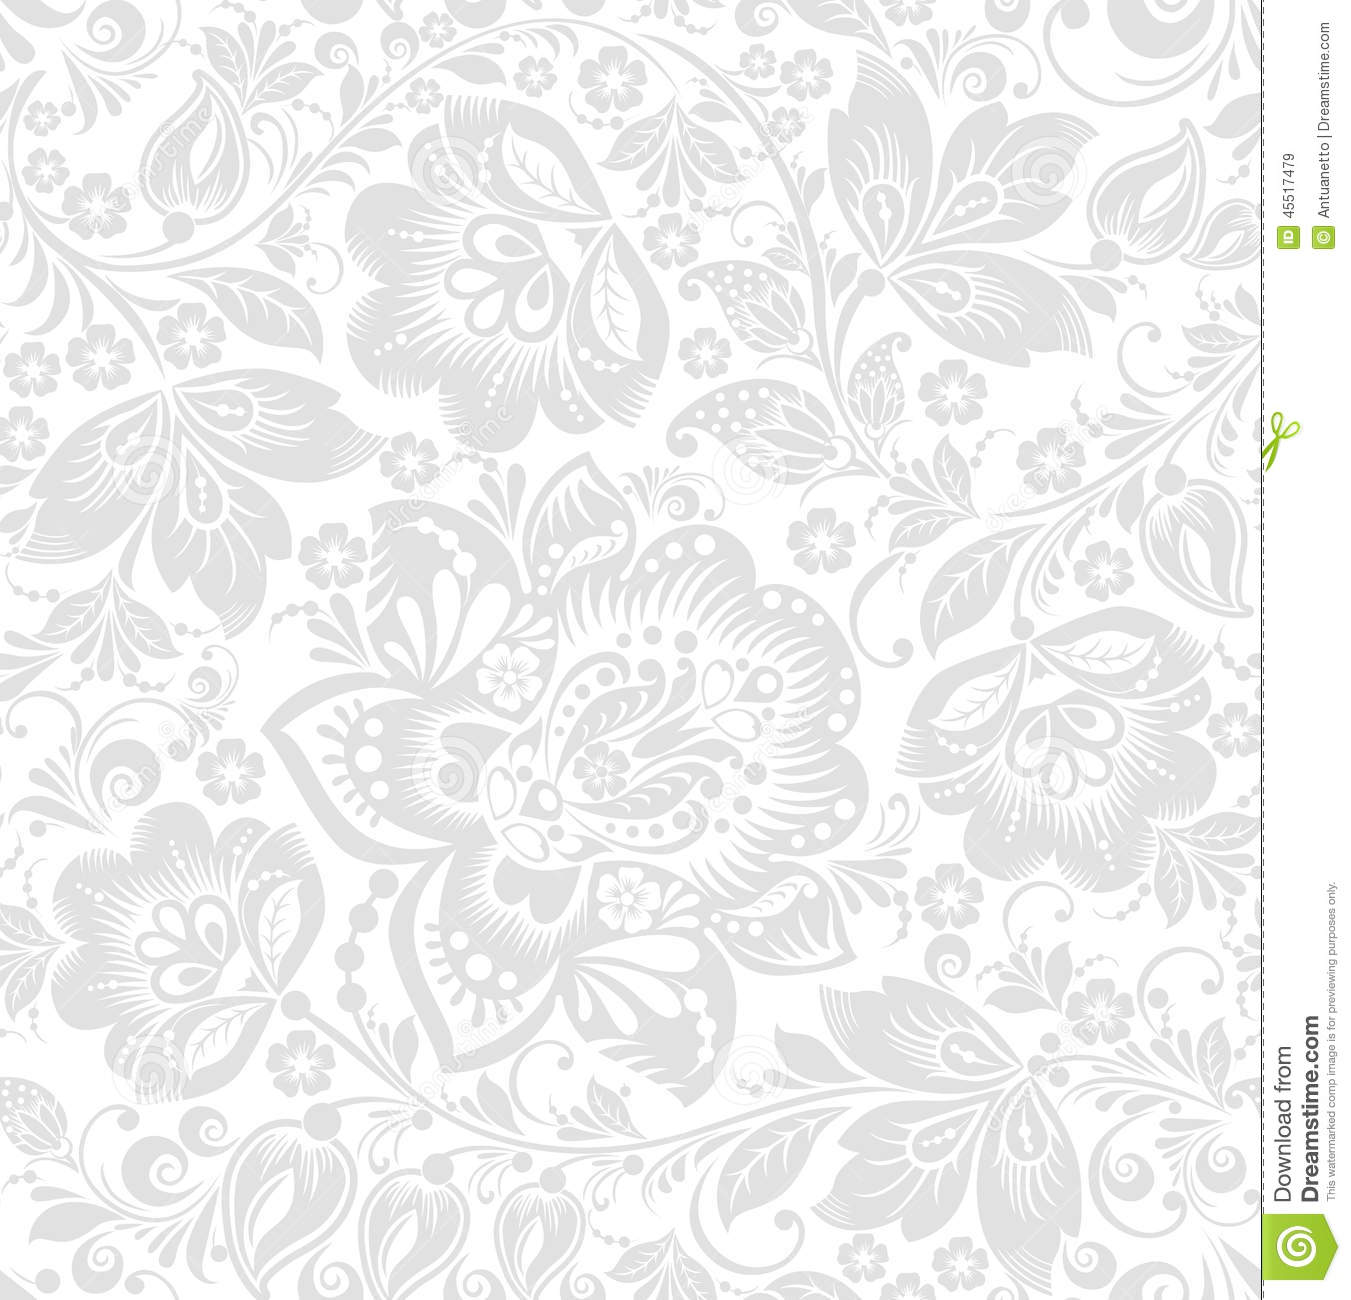 Free Flower Background Black and White Pattern Vector